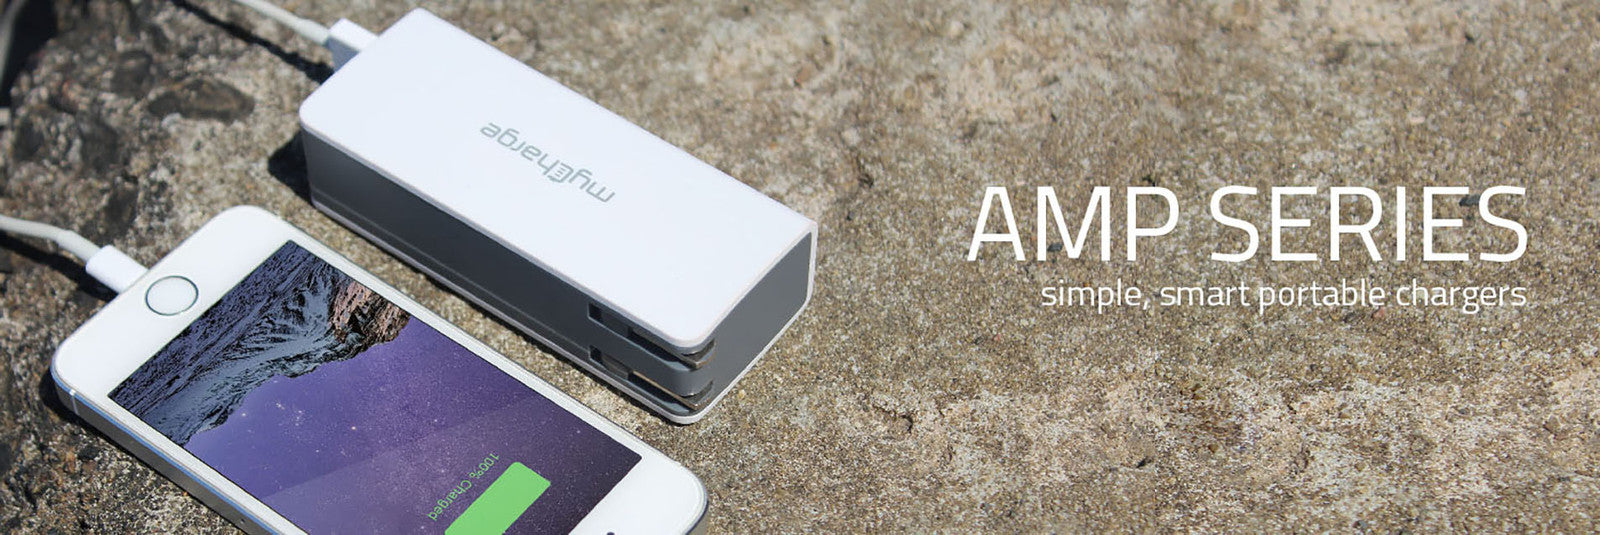 Amp Series - Smart Simple Power